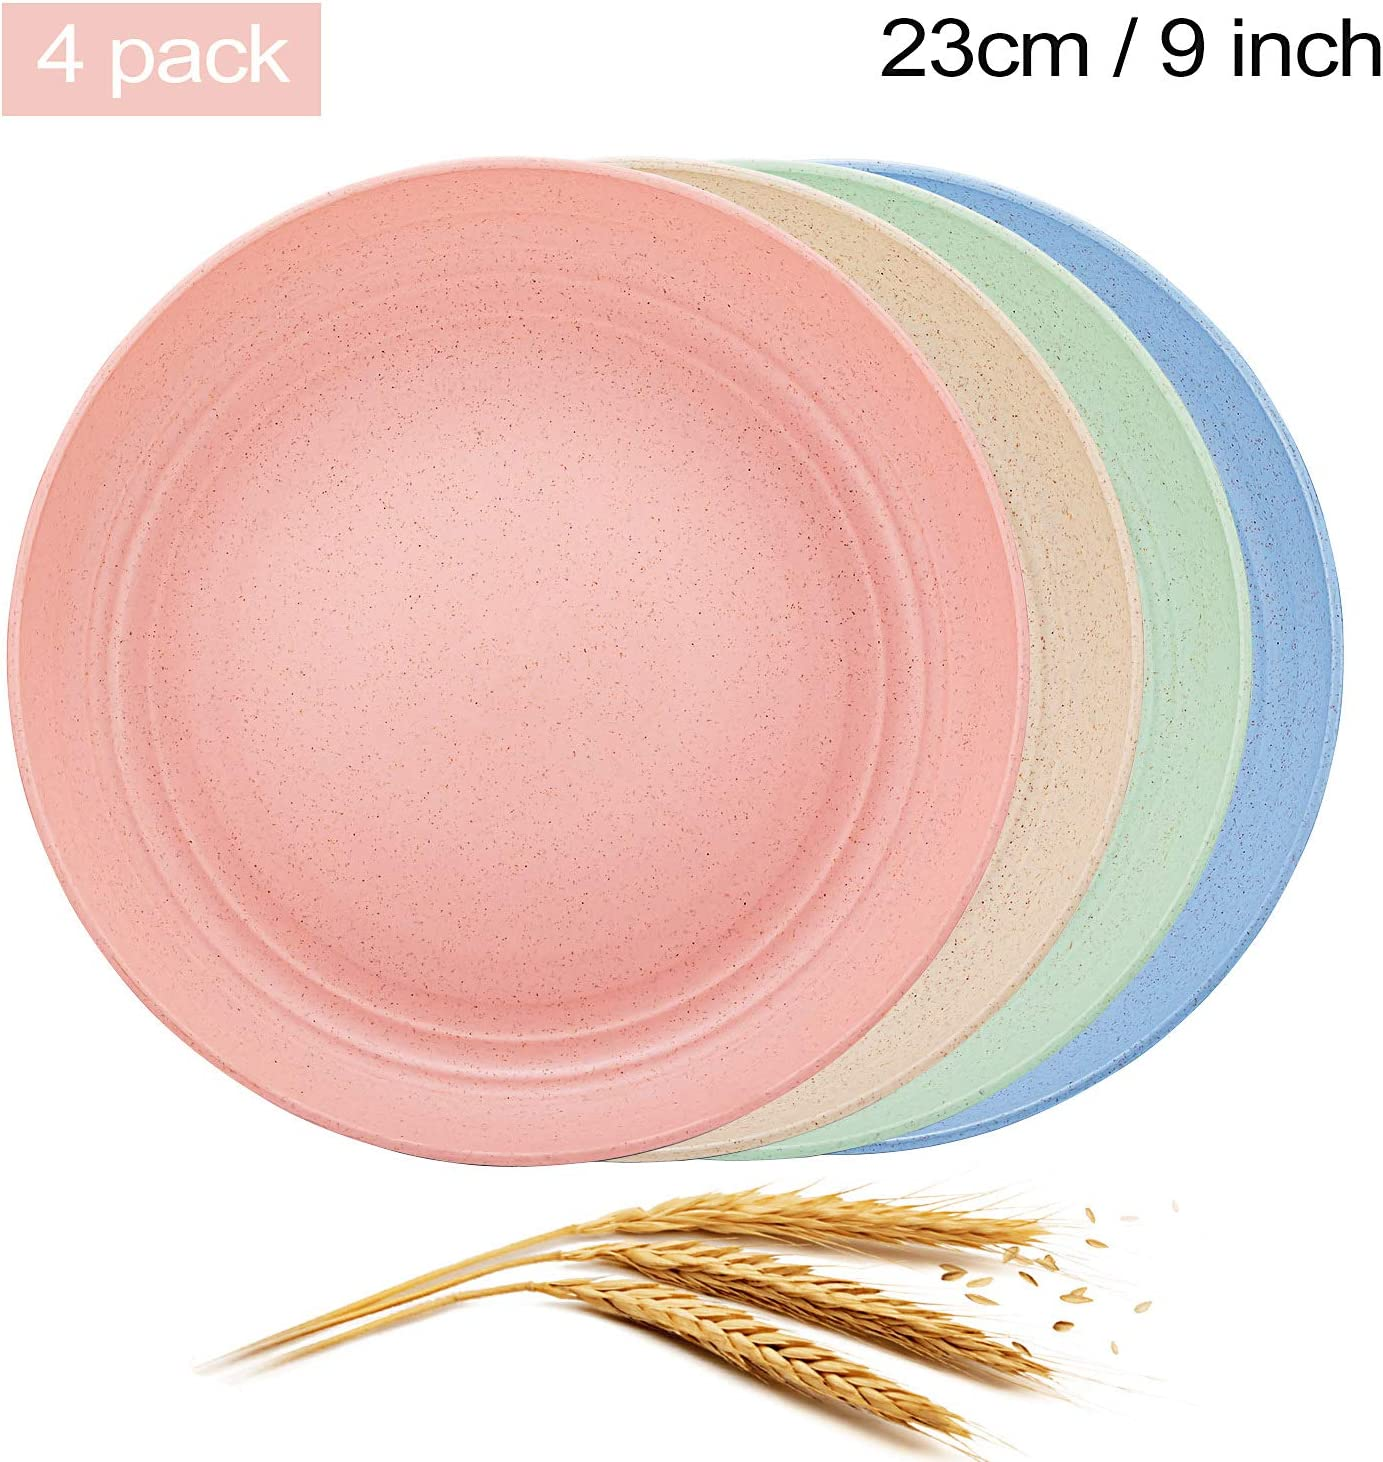 Aaskuu Unbreakable Lightweight Wheat Straw Plates, Reusable 9 Inch Plate Set for Kids Children Toddler Adult, Degradable Dinner Plates, BPA Free, Dishwasher & Microwave Safe,4 Pack